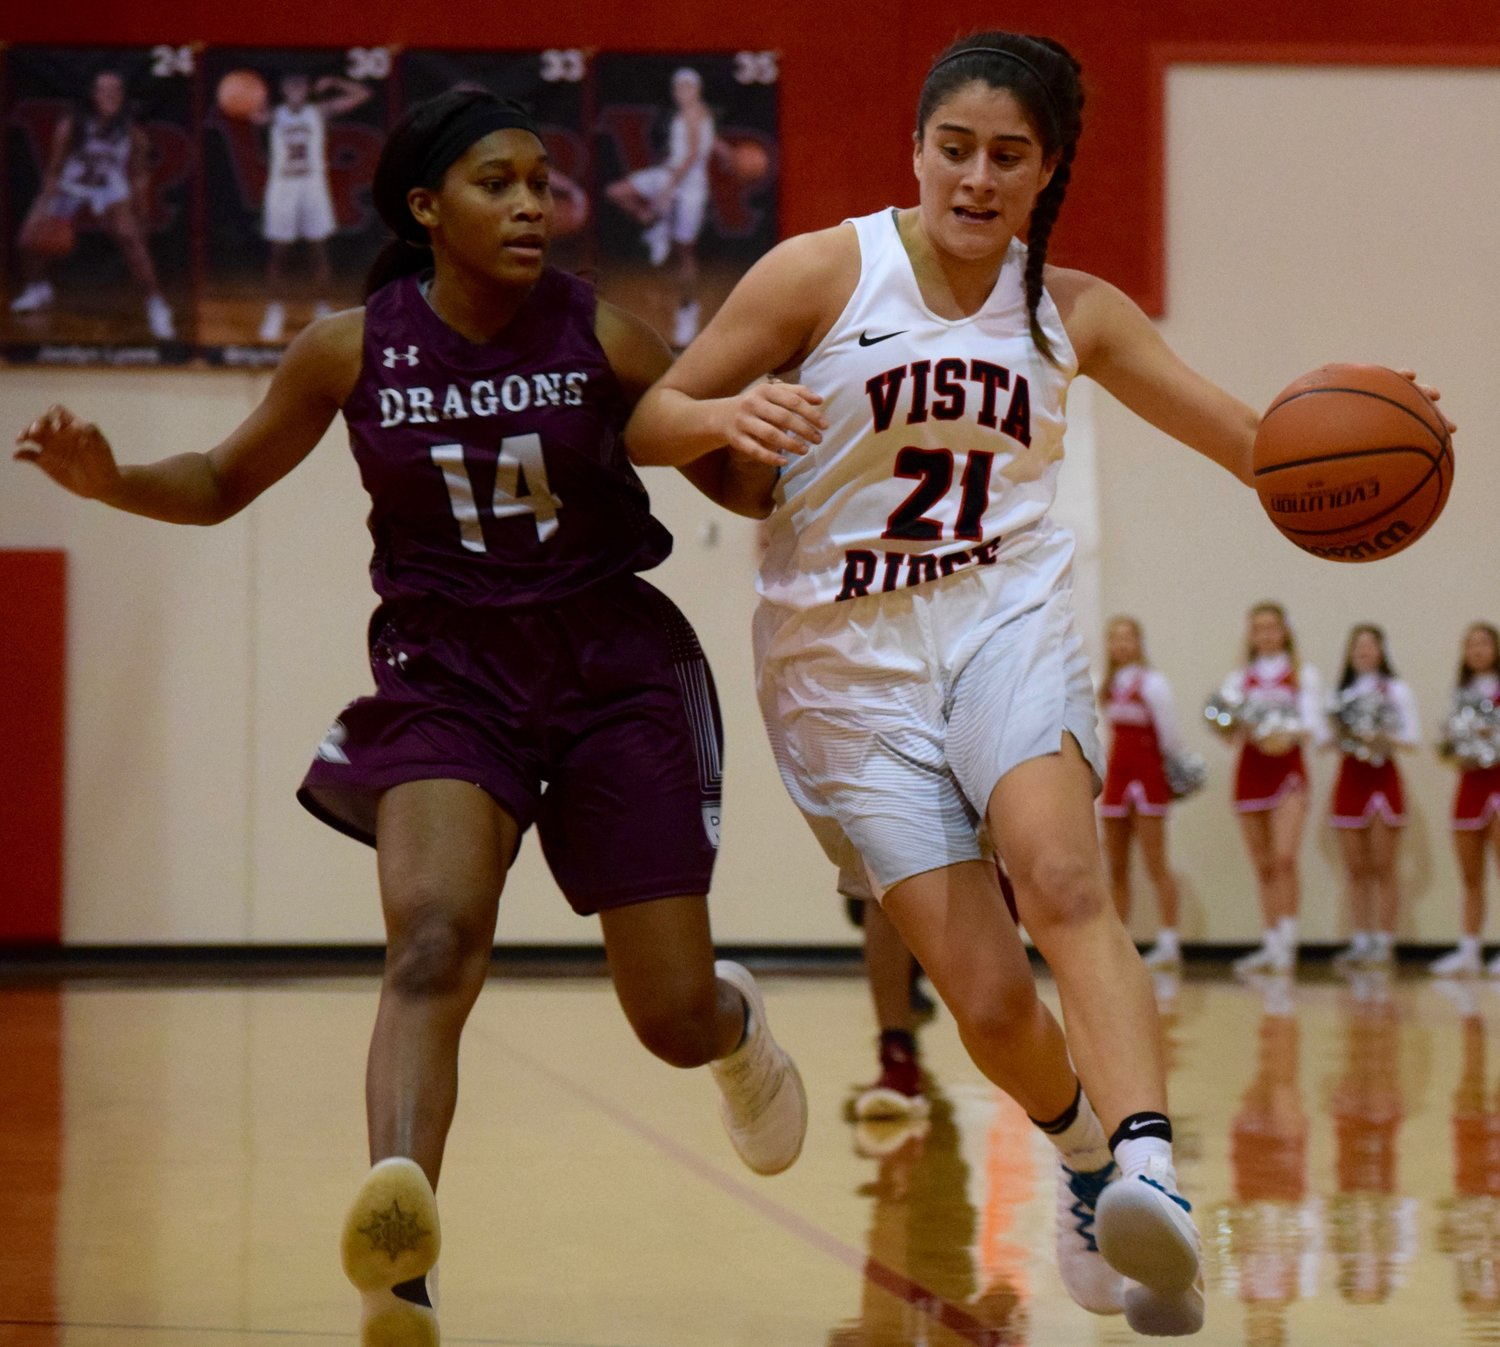 Vista Ridge junior Vicotria Baker was named co-Offensive Player of the Year in District 13-6A. The Lady Rangers made it to the regional semifinals this season.